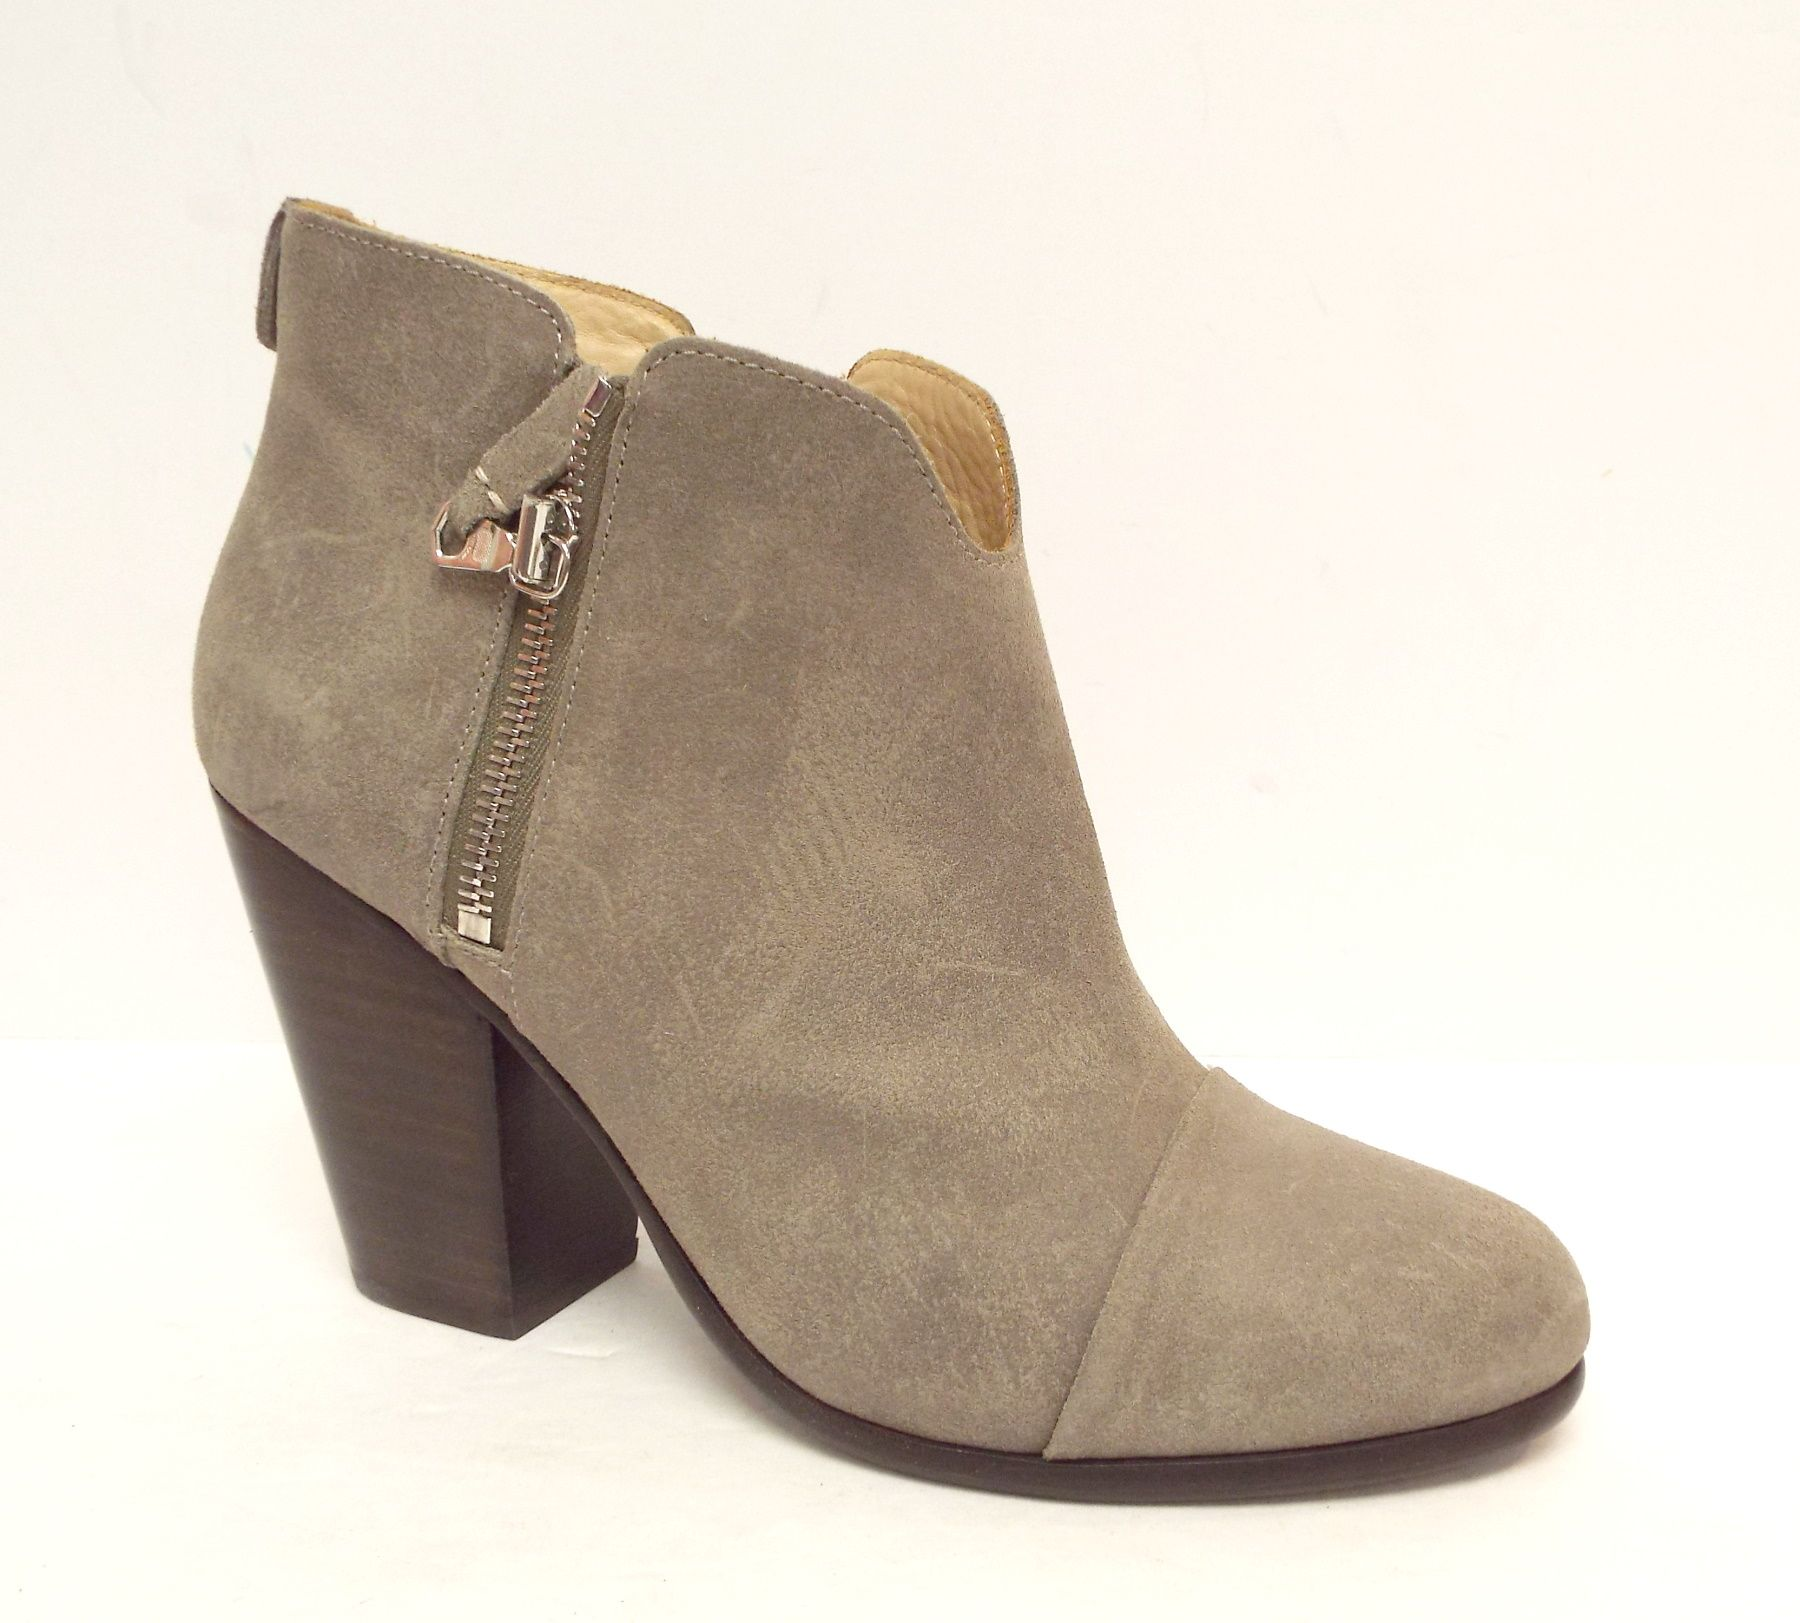 RAG & BONE MARGOT Stone Taupe Suede Ankle Boot 38.5